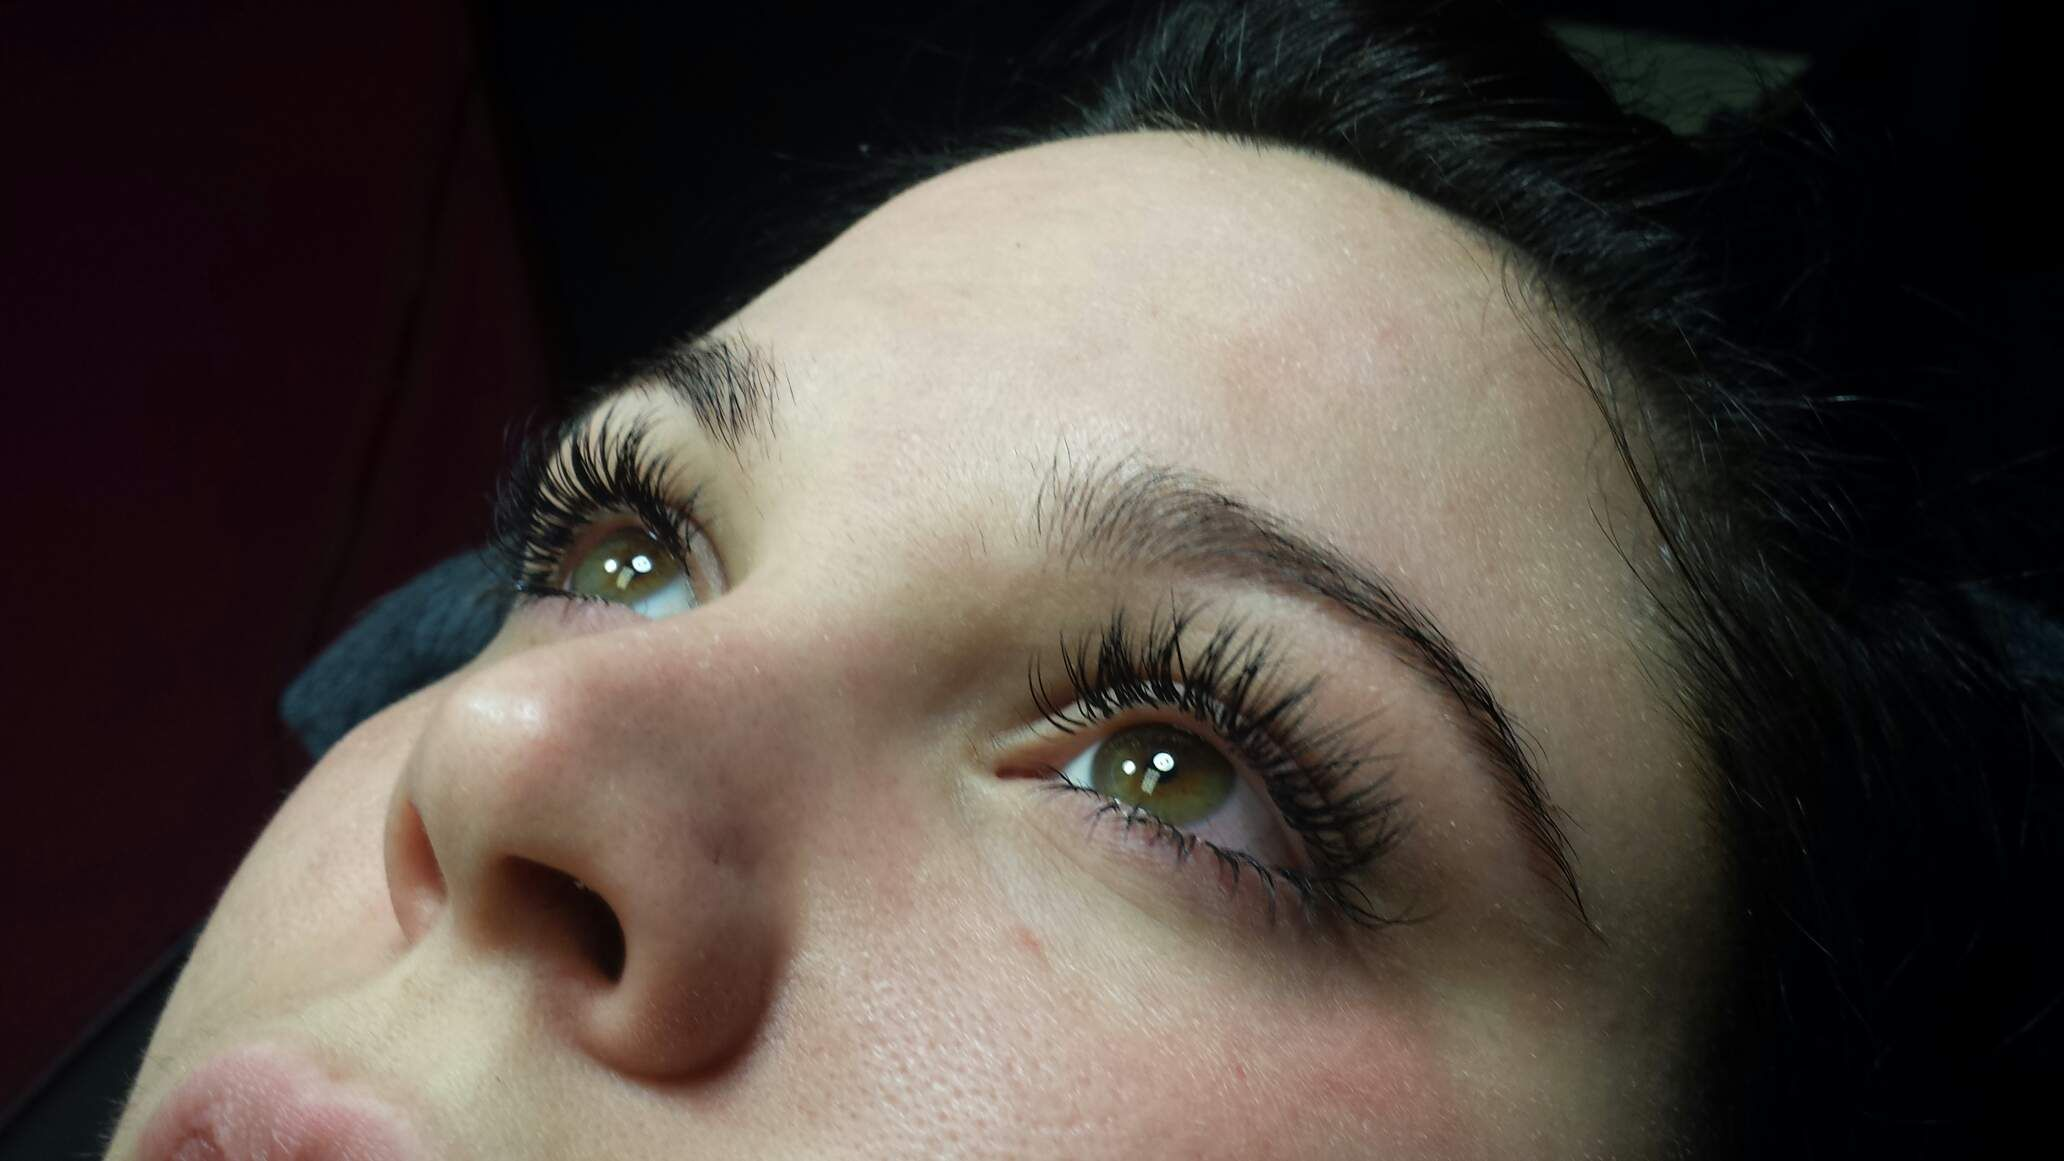 01a72354f87 Another look at Roxanne wearing Xtreme lashes on the top & bottom! #xtreme # lashmoi #glamour